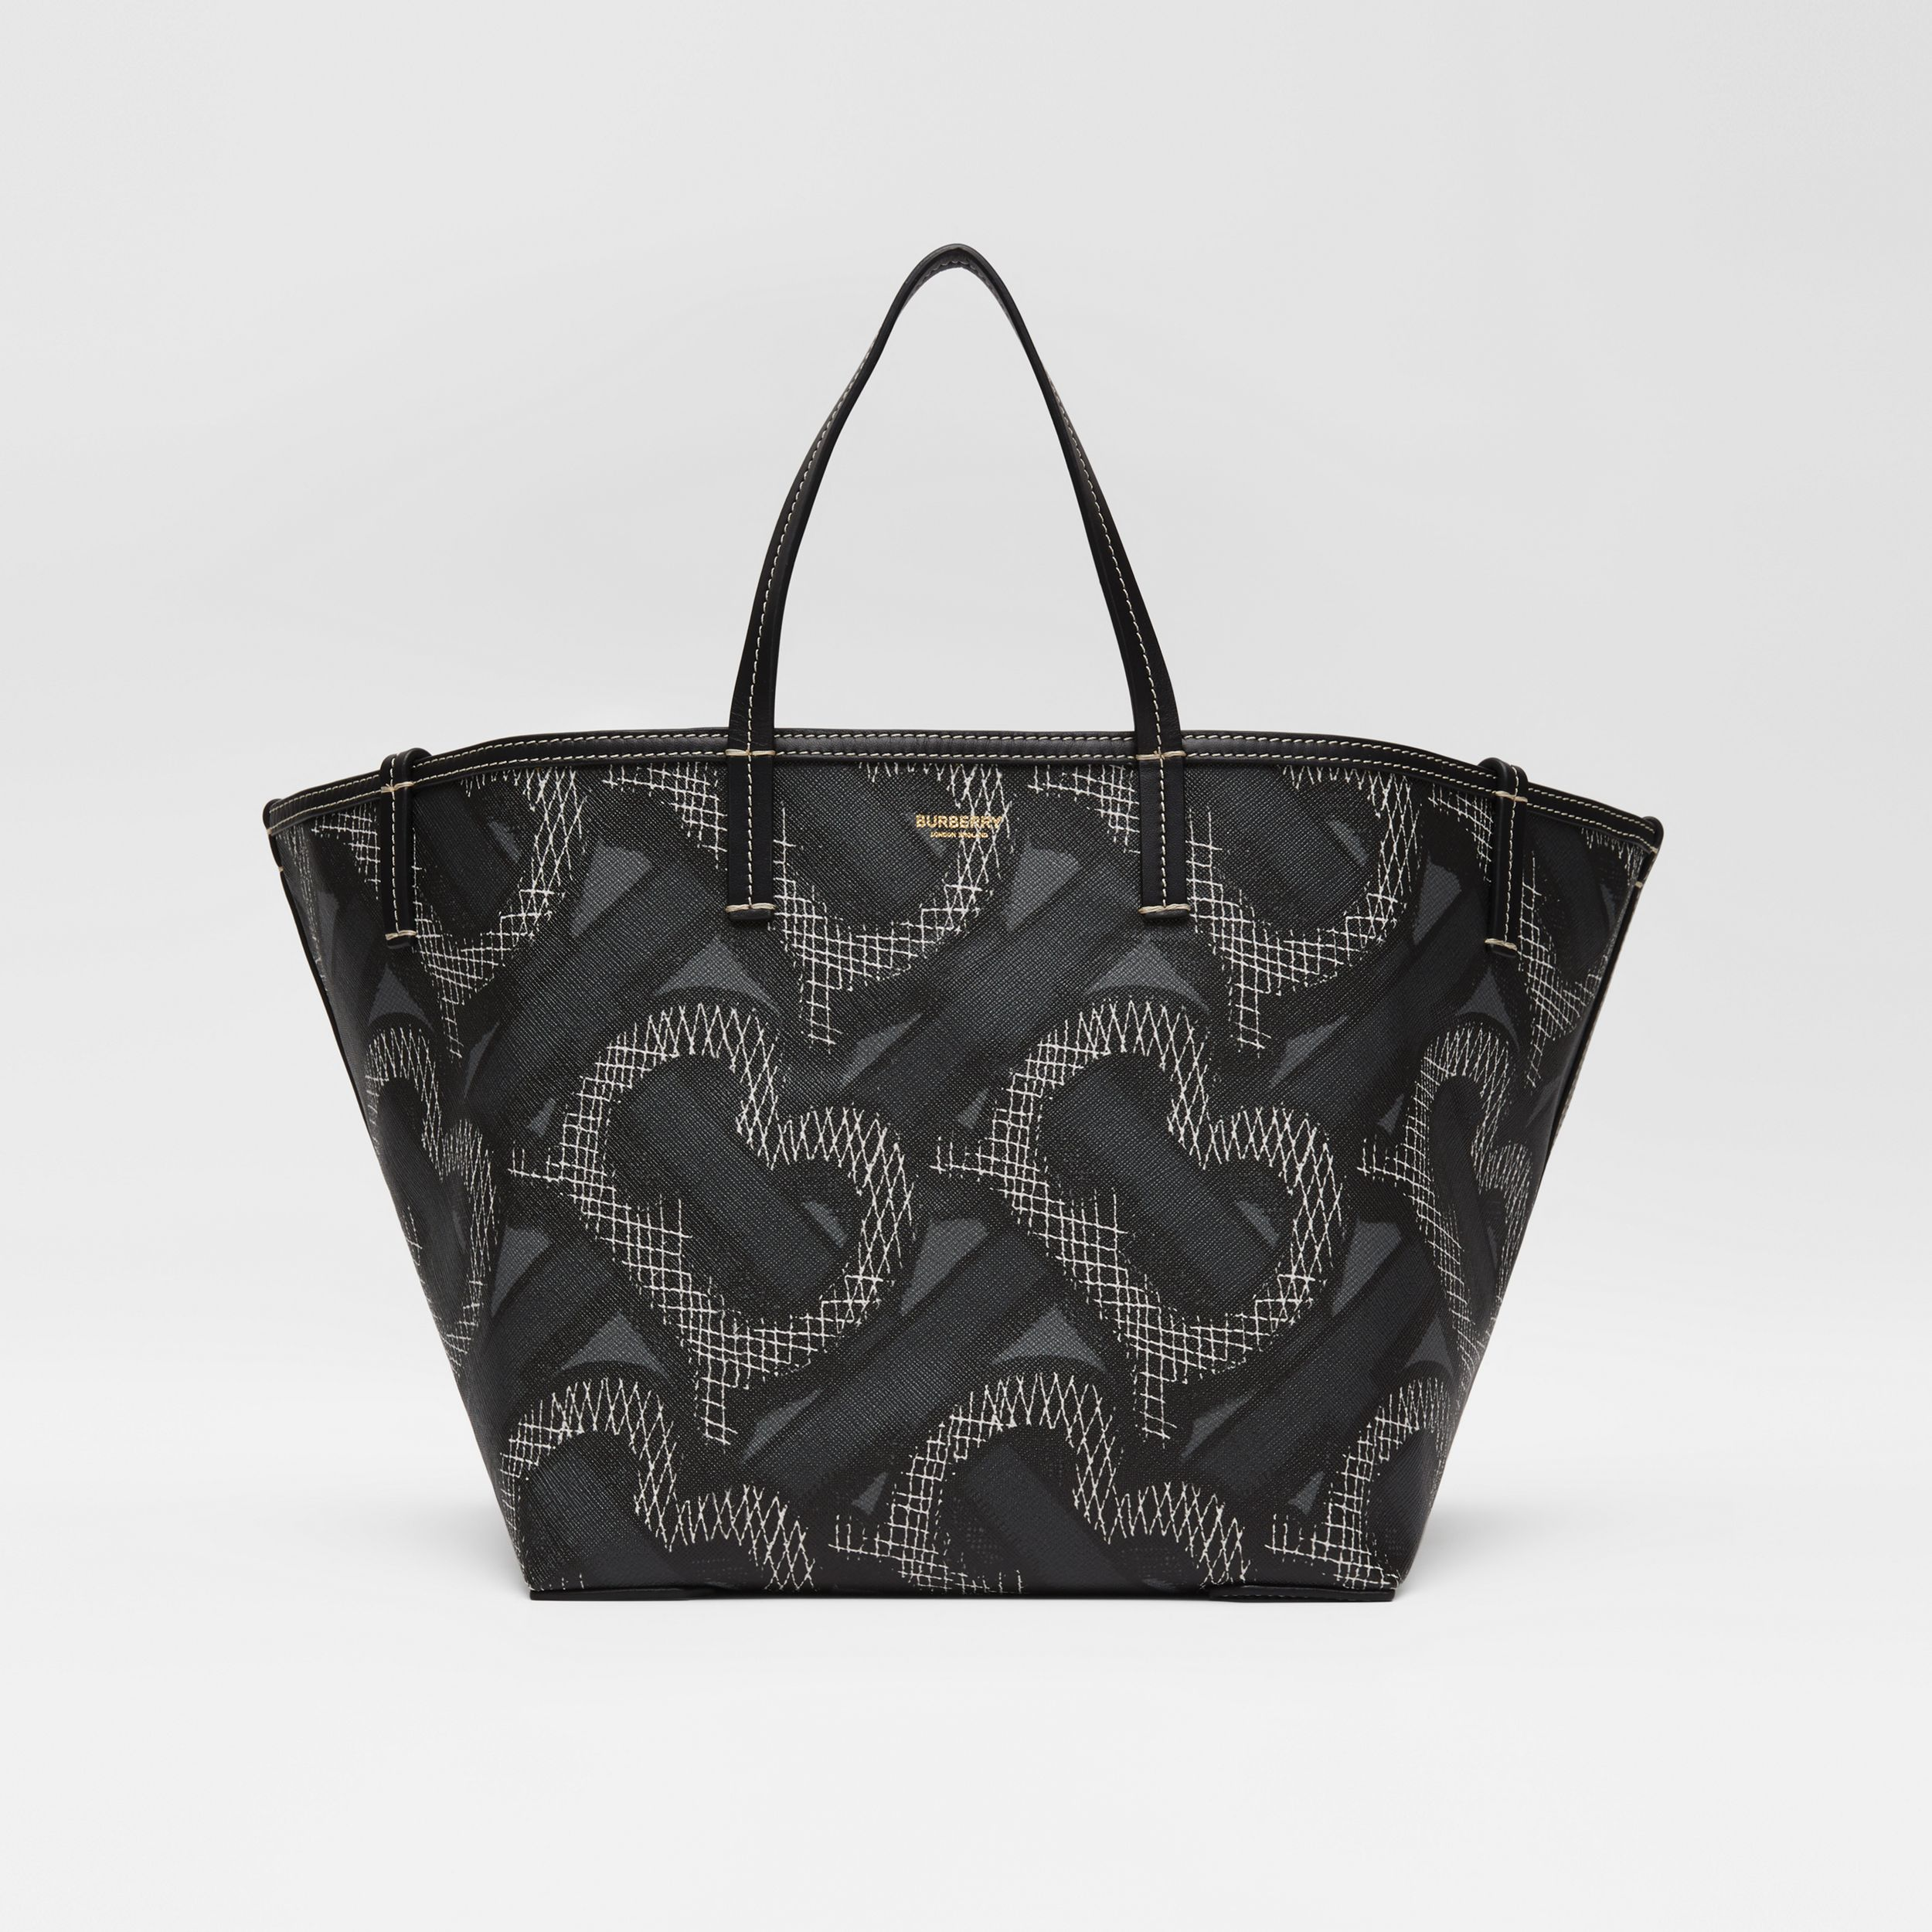 Mini Monogram Print E-canvas Beach Tote in Graphite | Burberry Australia - 1